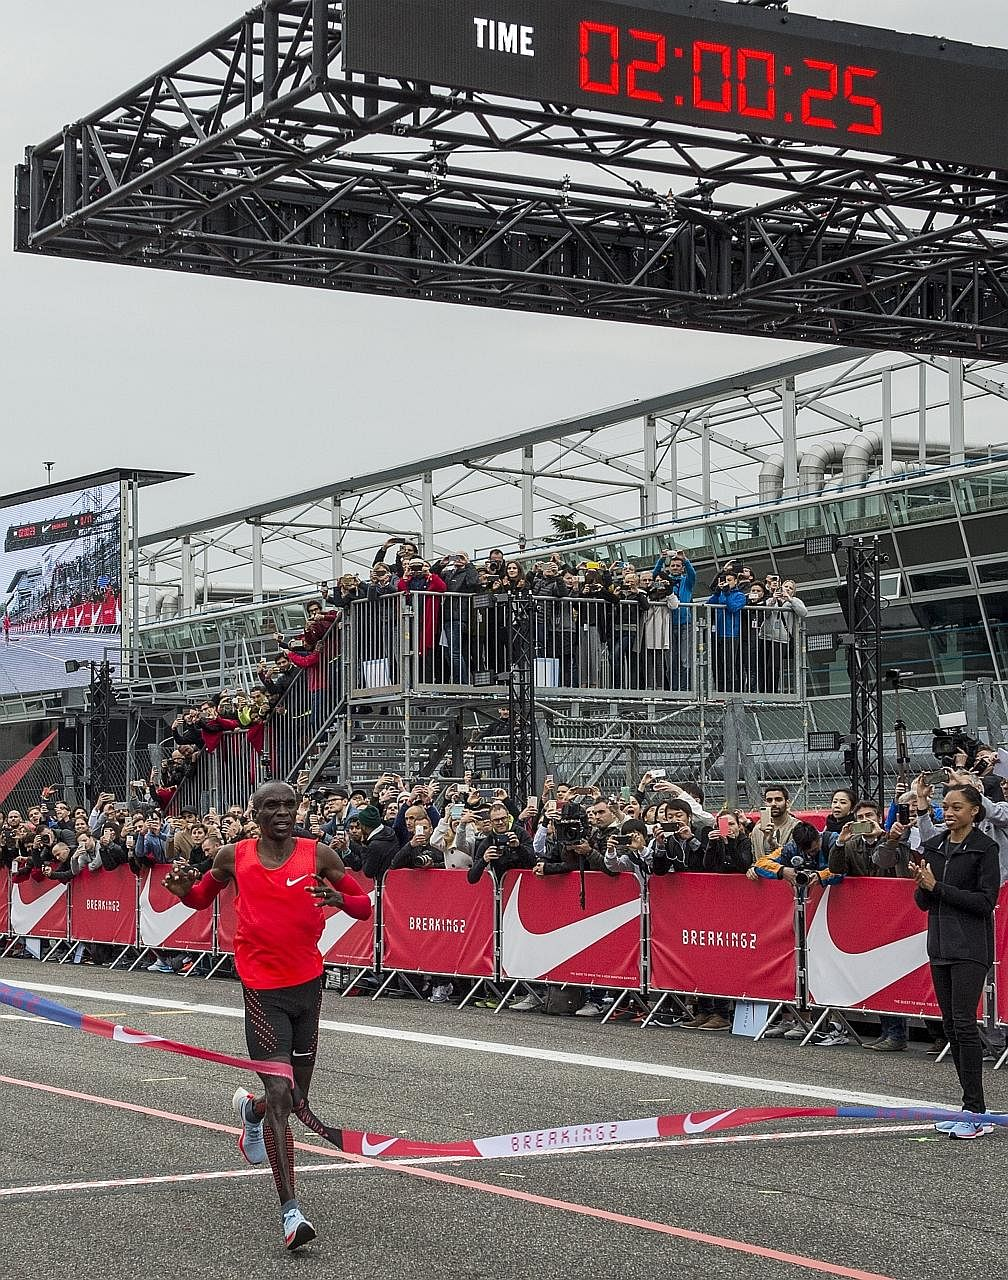 Marathon runner Eliud Kipchoge crossing the finish line at the Monza Formula One track in two hours and 25 seconds.